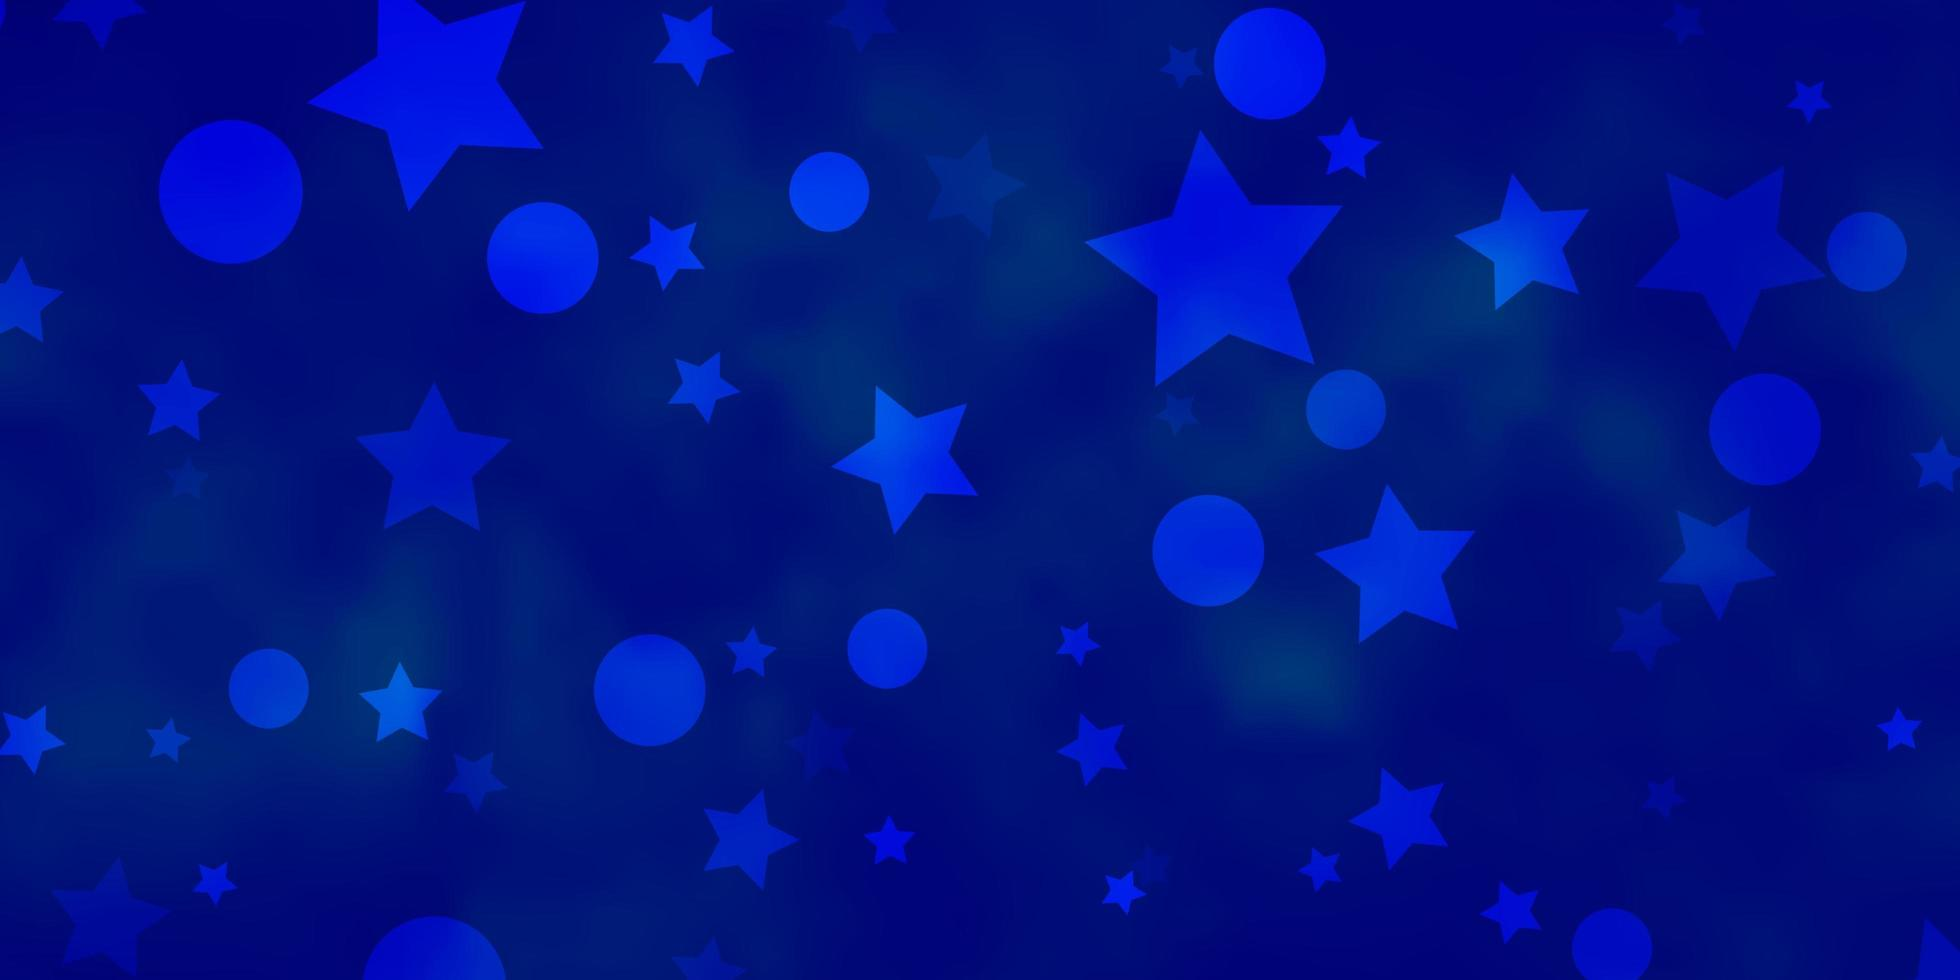 Light BLUE vector layout with circles, stars.